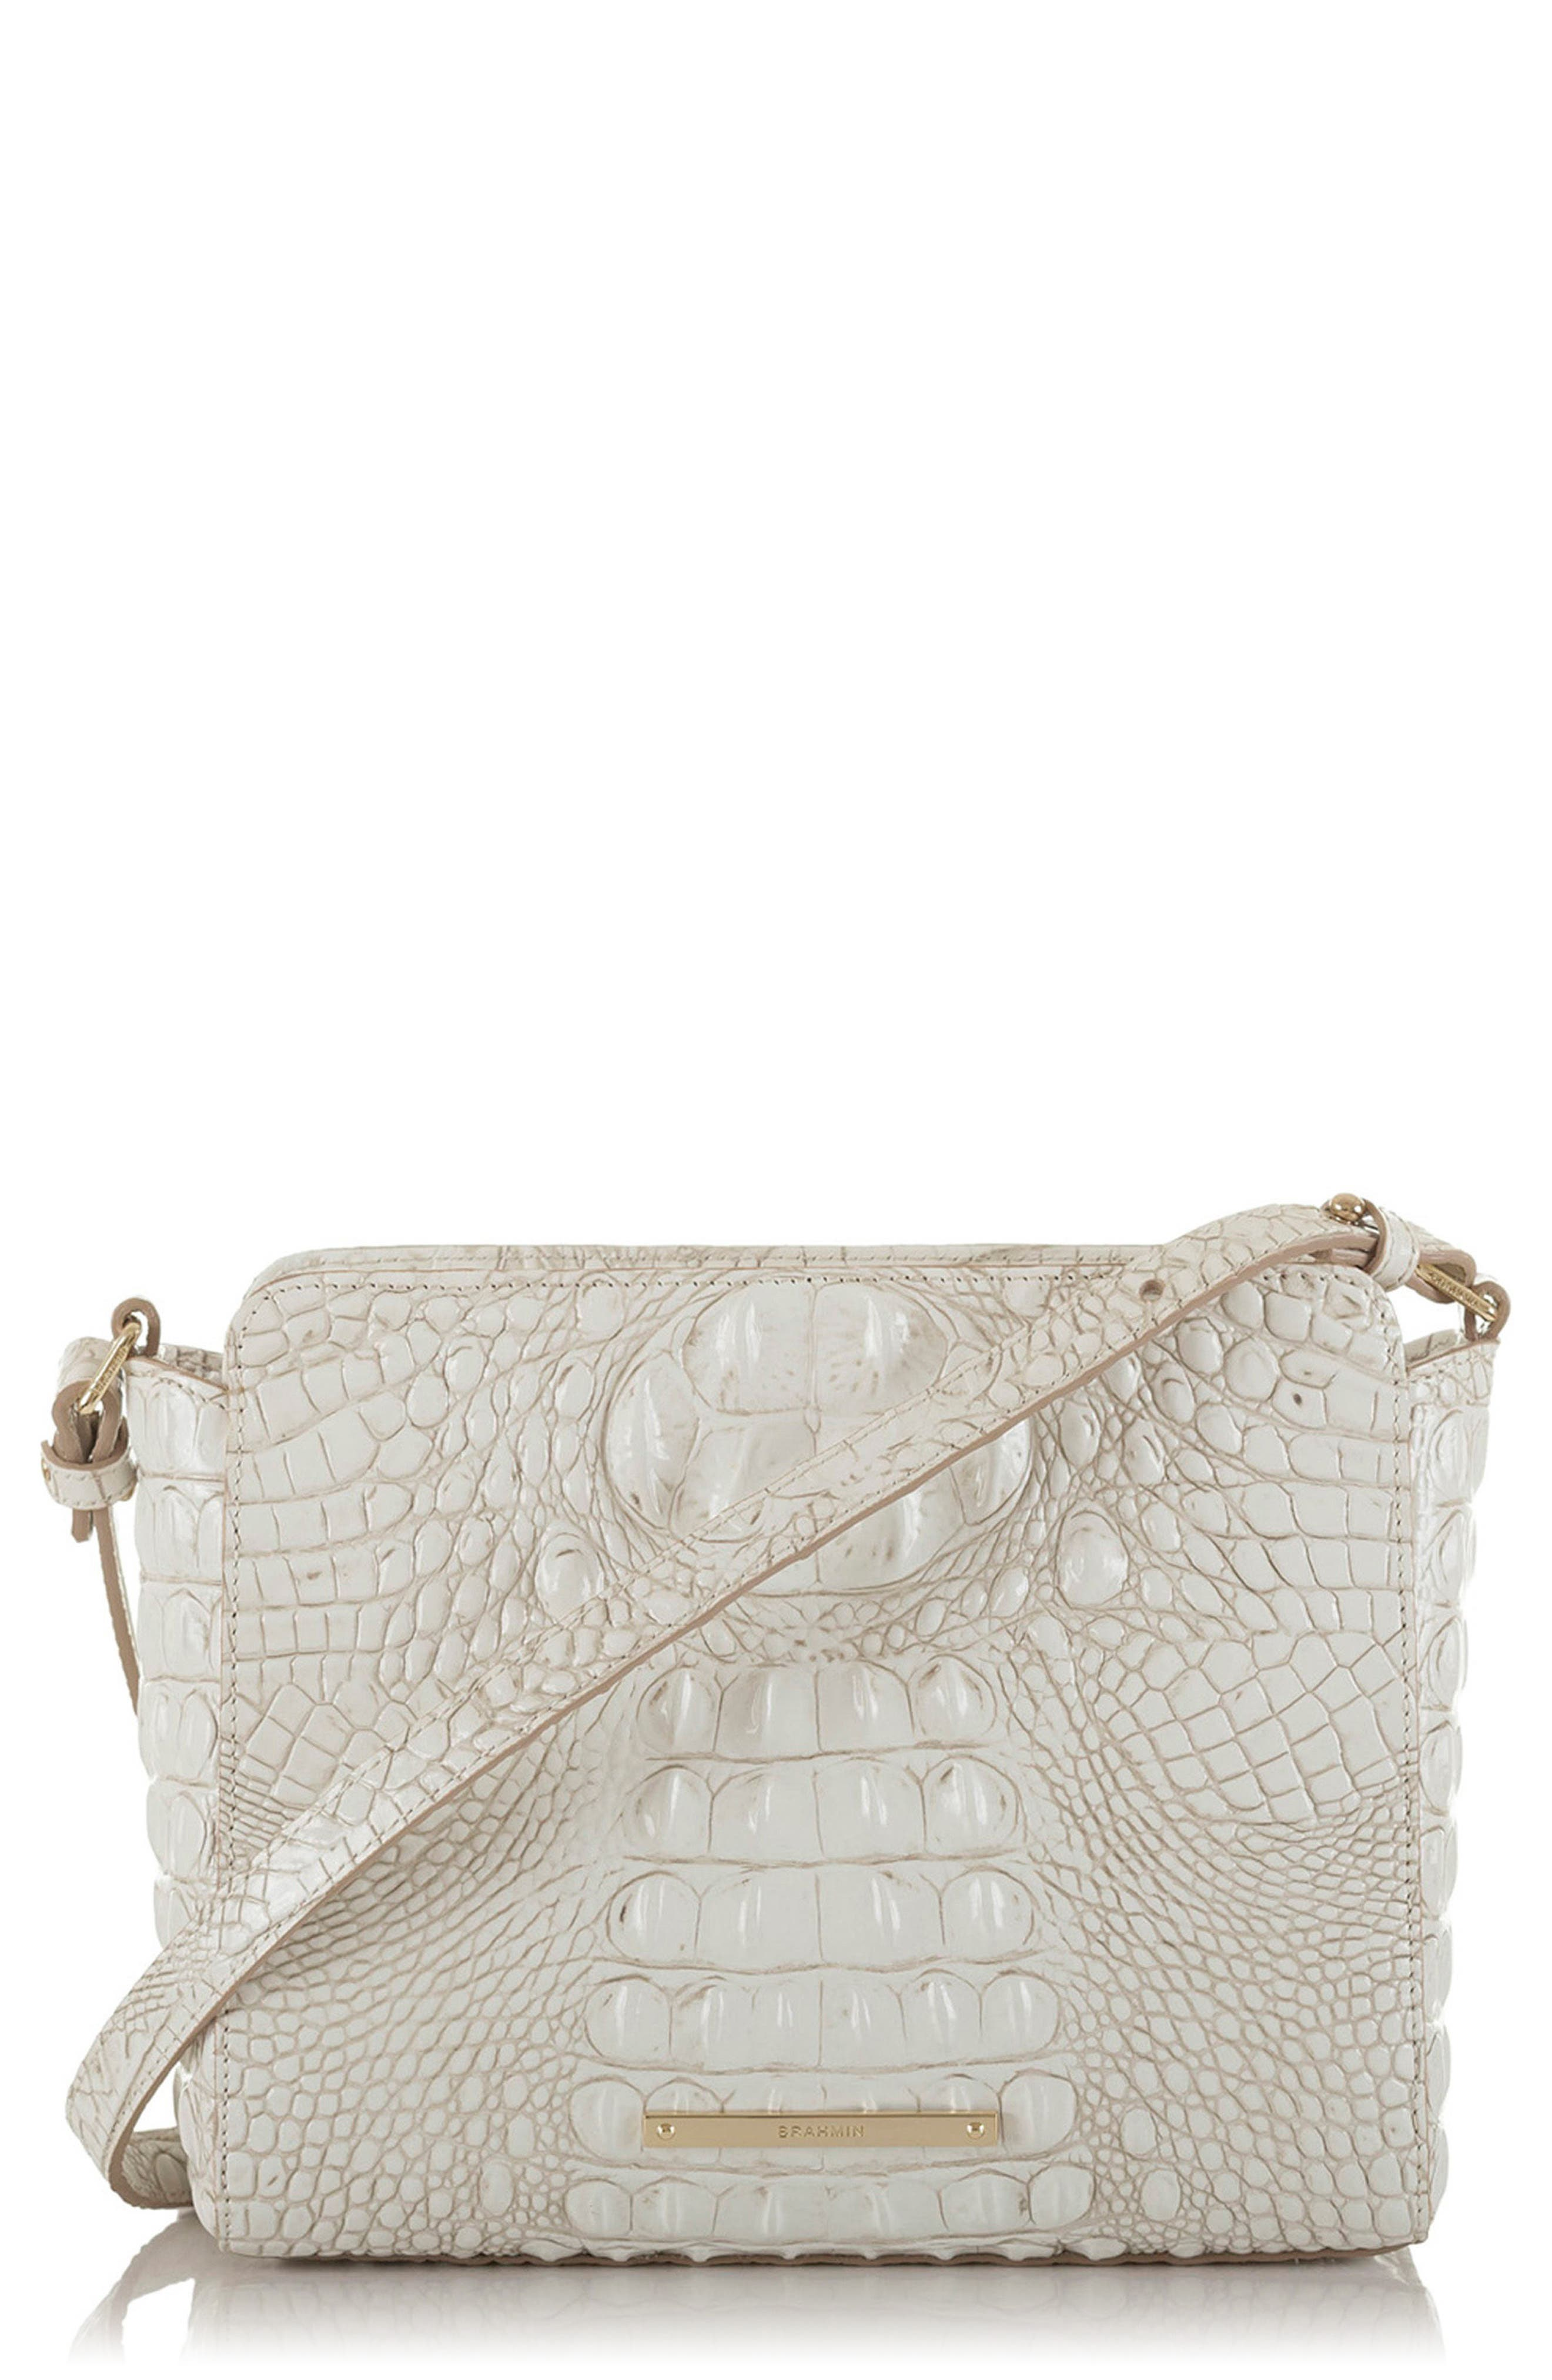 BRAHMIN,                             Melbourne Carrie Leather Crossbody Bag,                             Main thumbnail 1, color,                             100